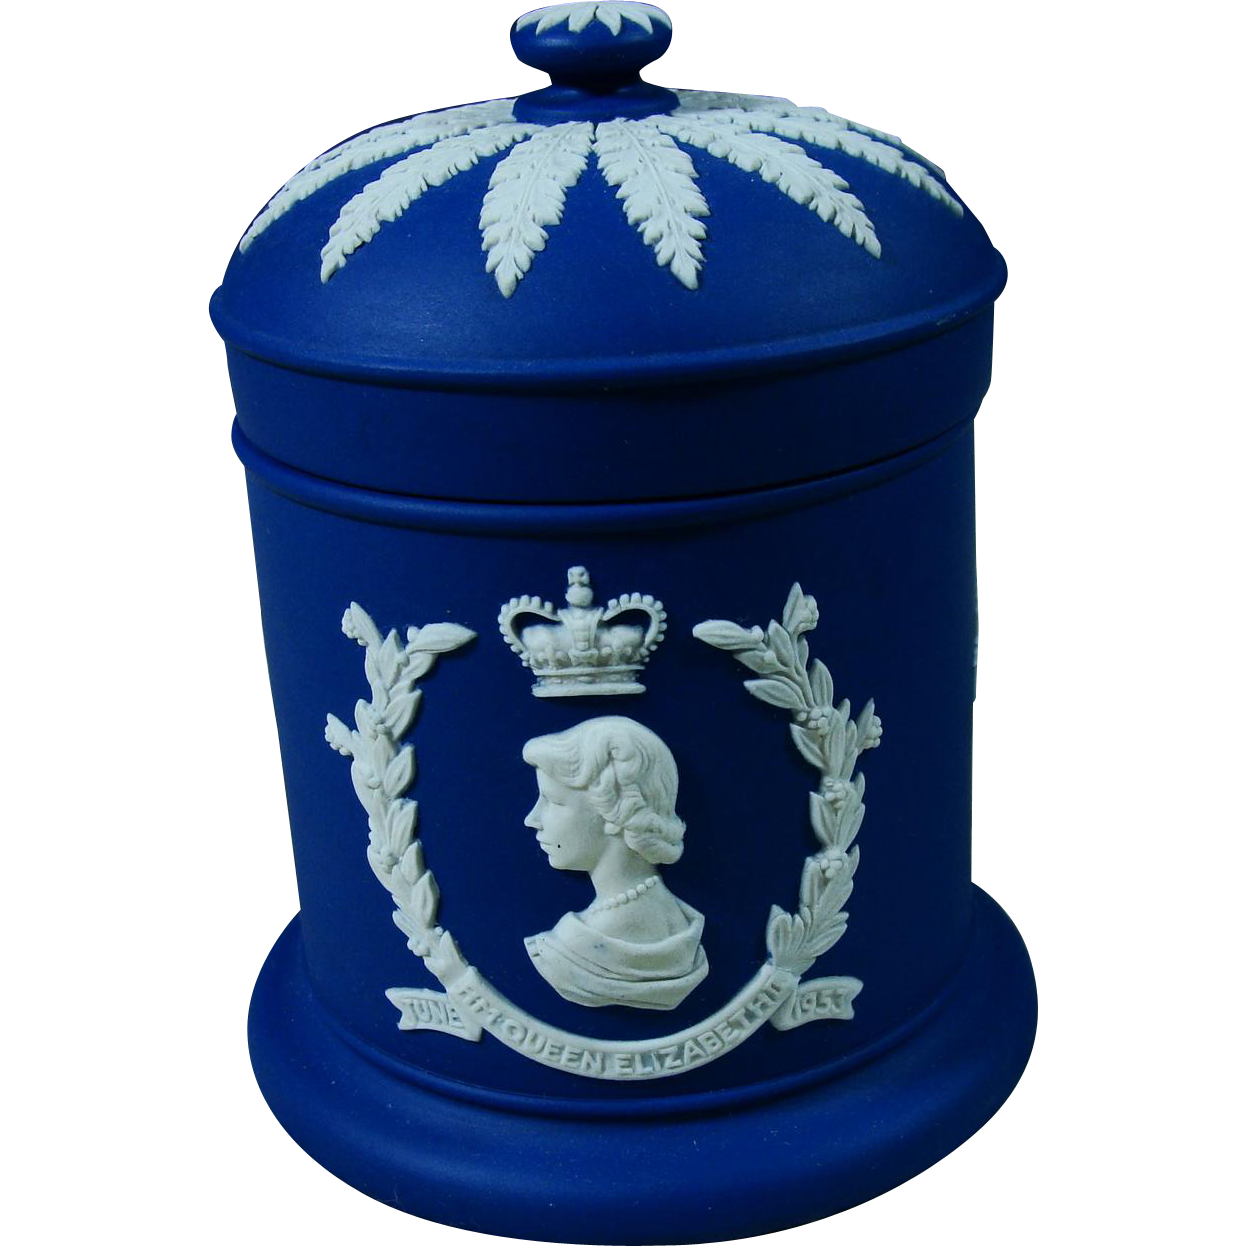 1953 Royal Blue Jasperware Wedgwood